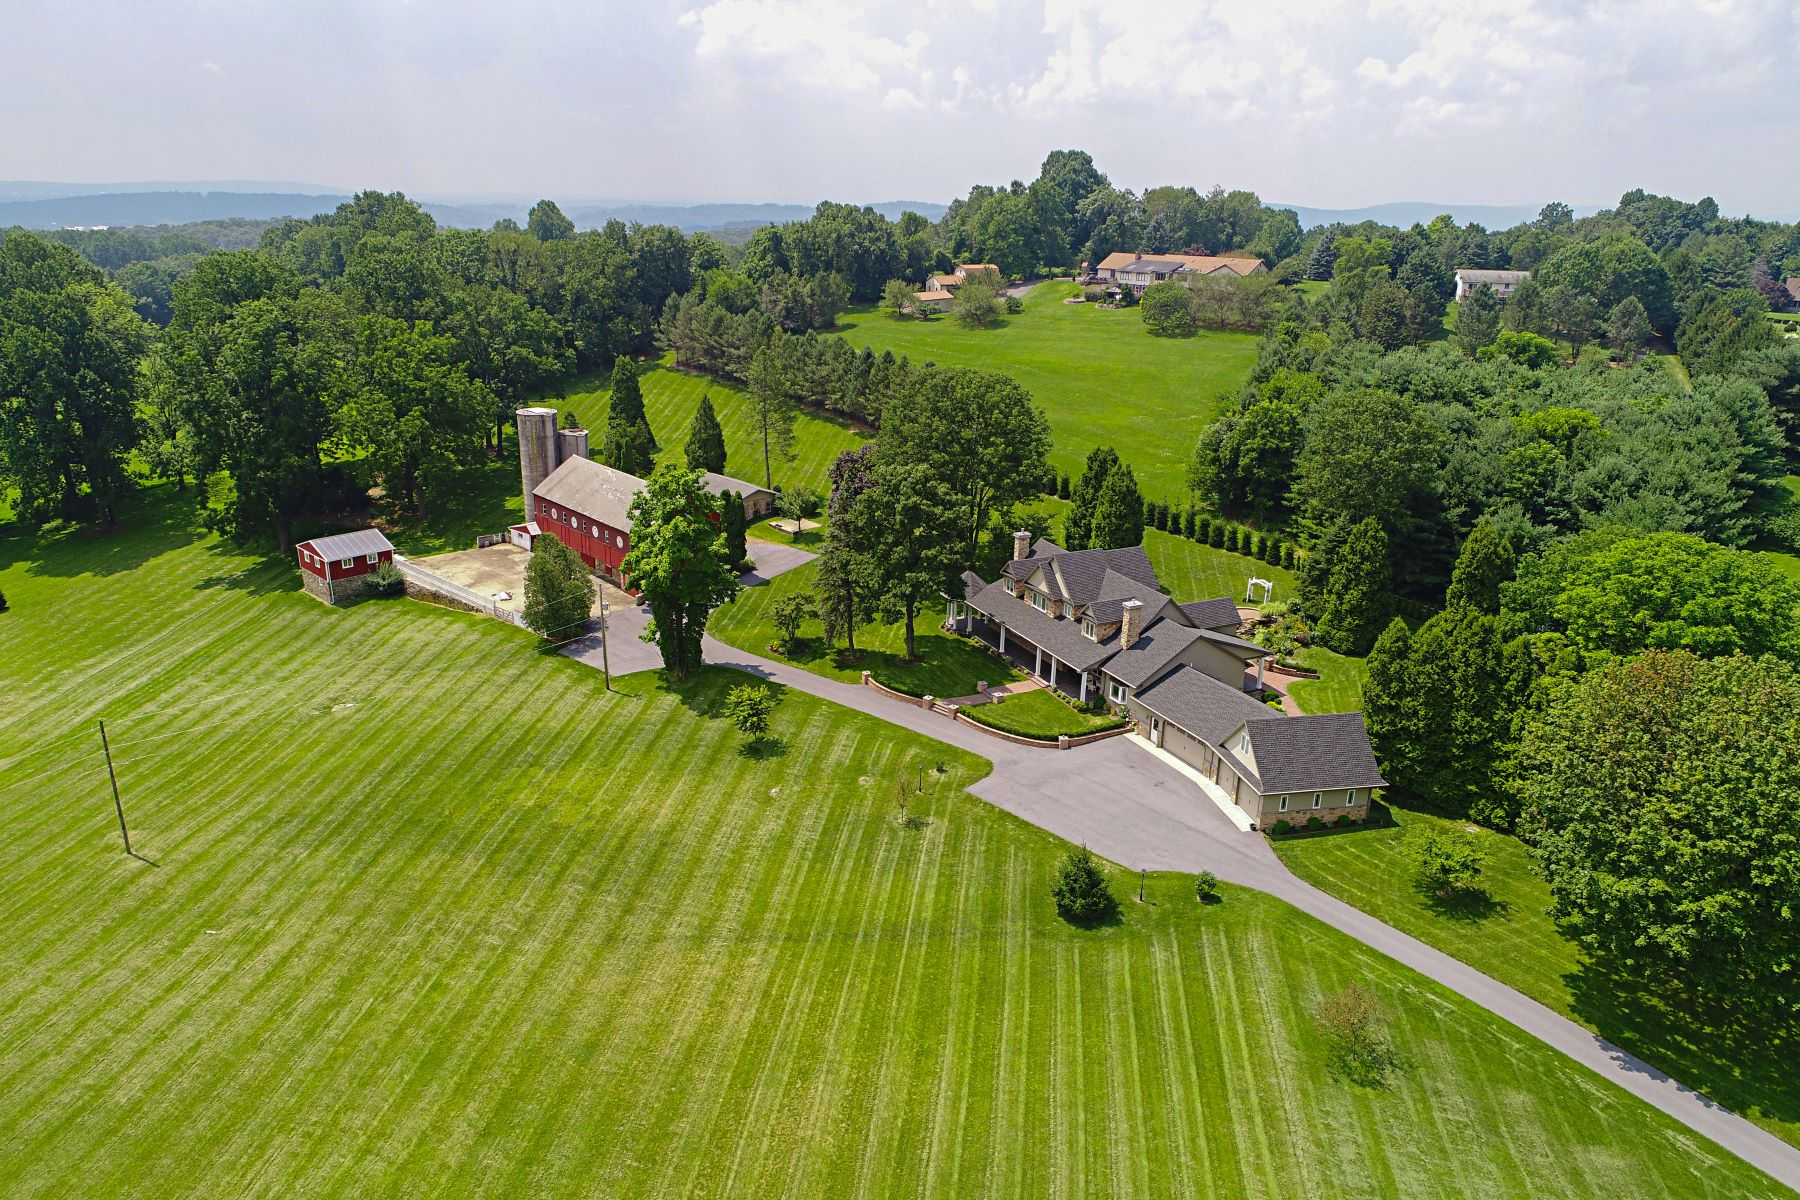 Single Family Home for Sale at 185 Golf Road 185 Golf Road Reinholds, Pennsylvania 17569 United States